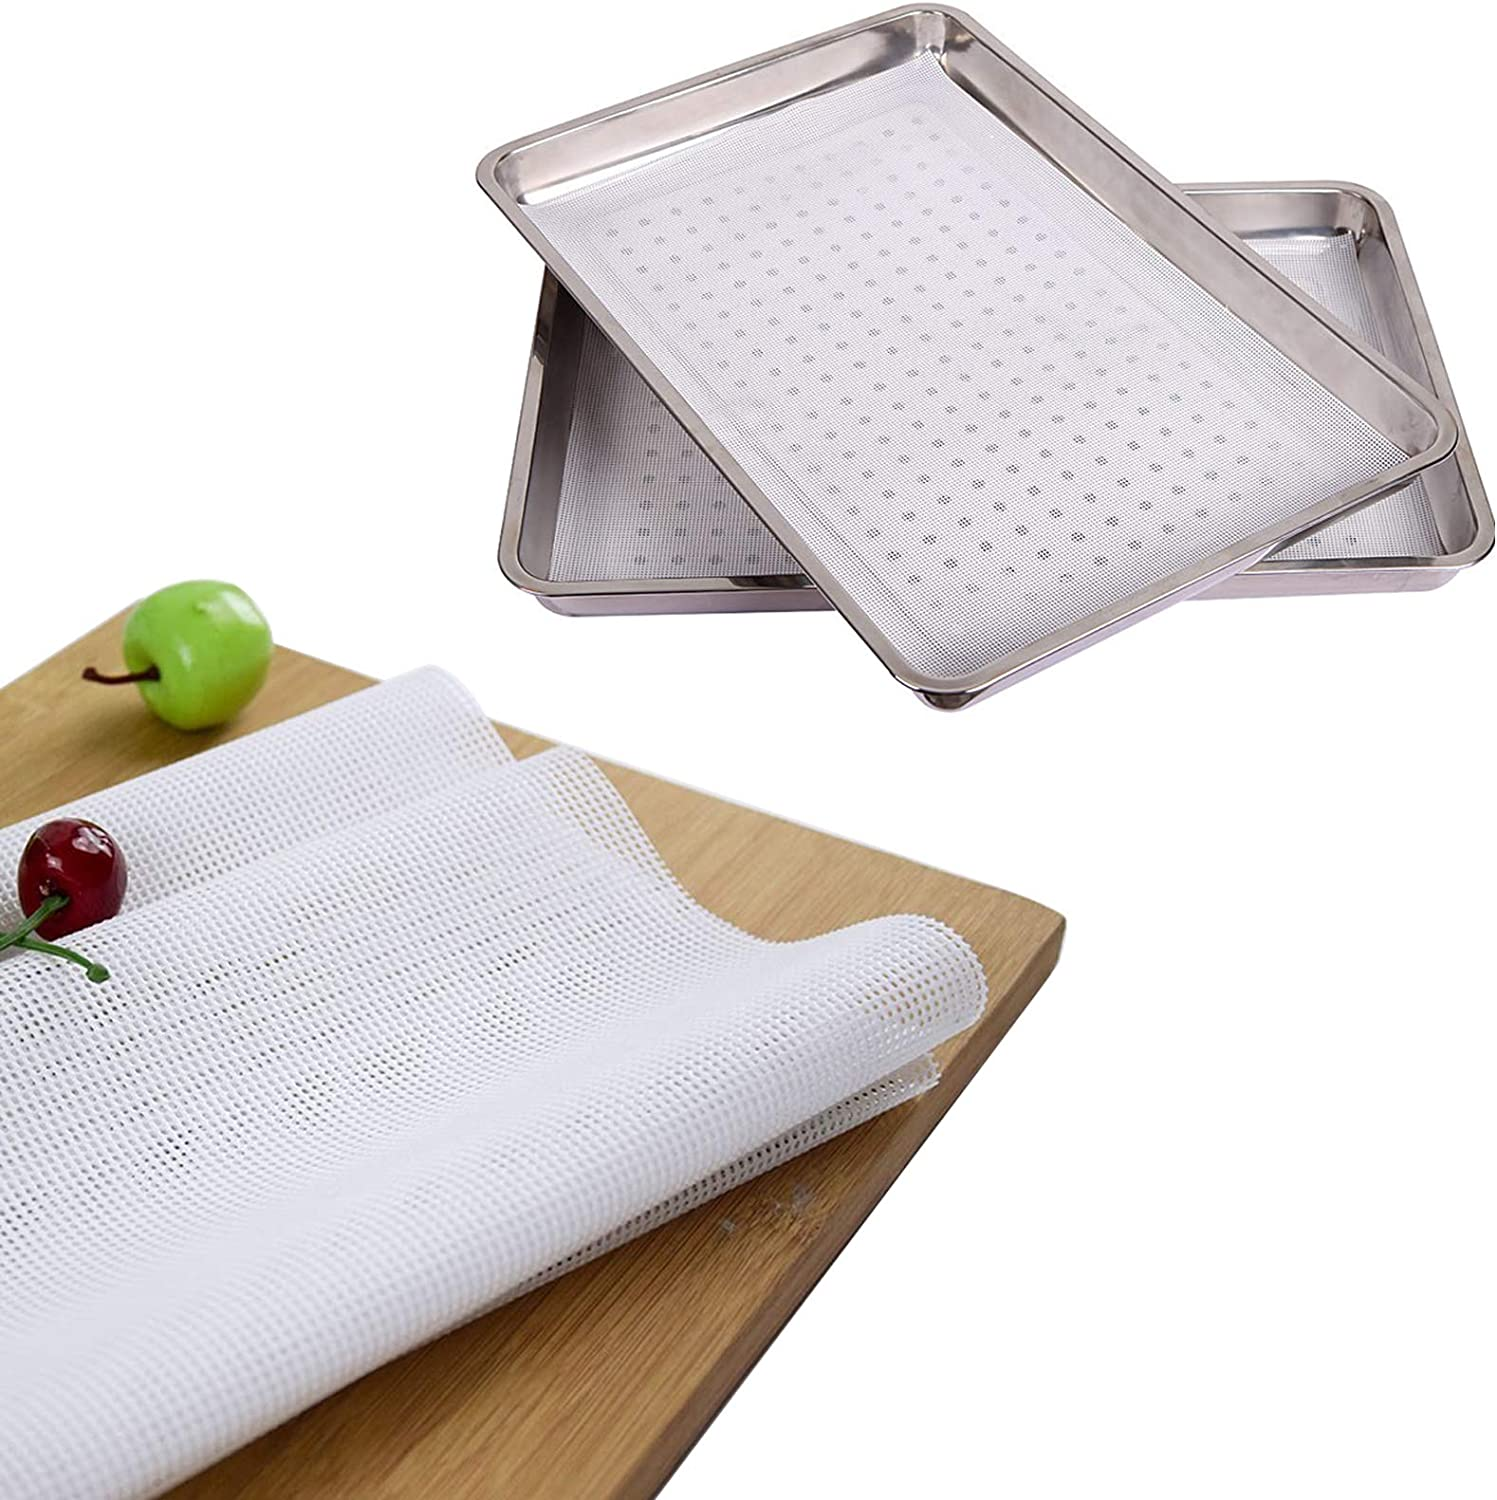 Pack of 6 Dehydrators for Food and Jerky, Silicone Food Dehydrator Sheets, Premium Freeze Dryer Mesh, Non-stick Fruit Dehydrator Mats, Reusable Food Dehydrator Sheets Dryer Mesh